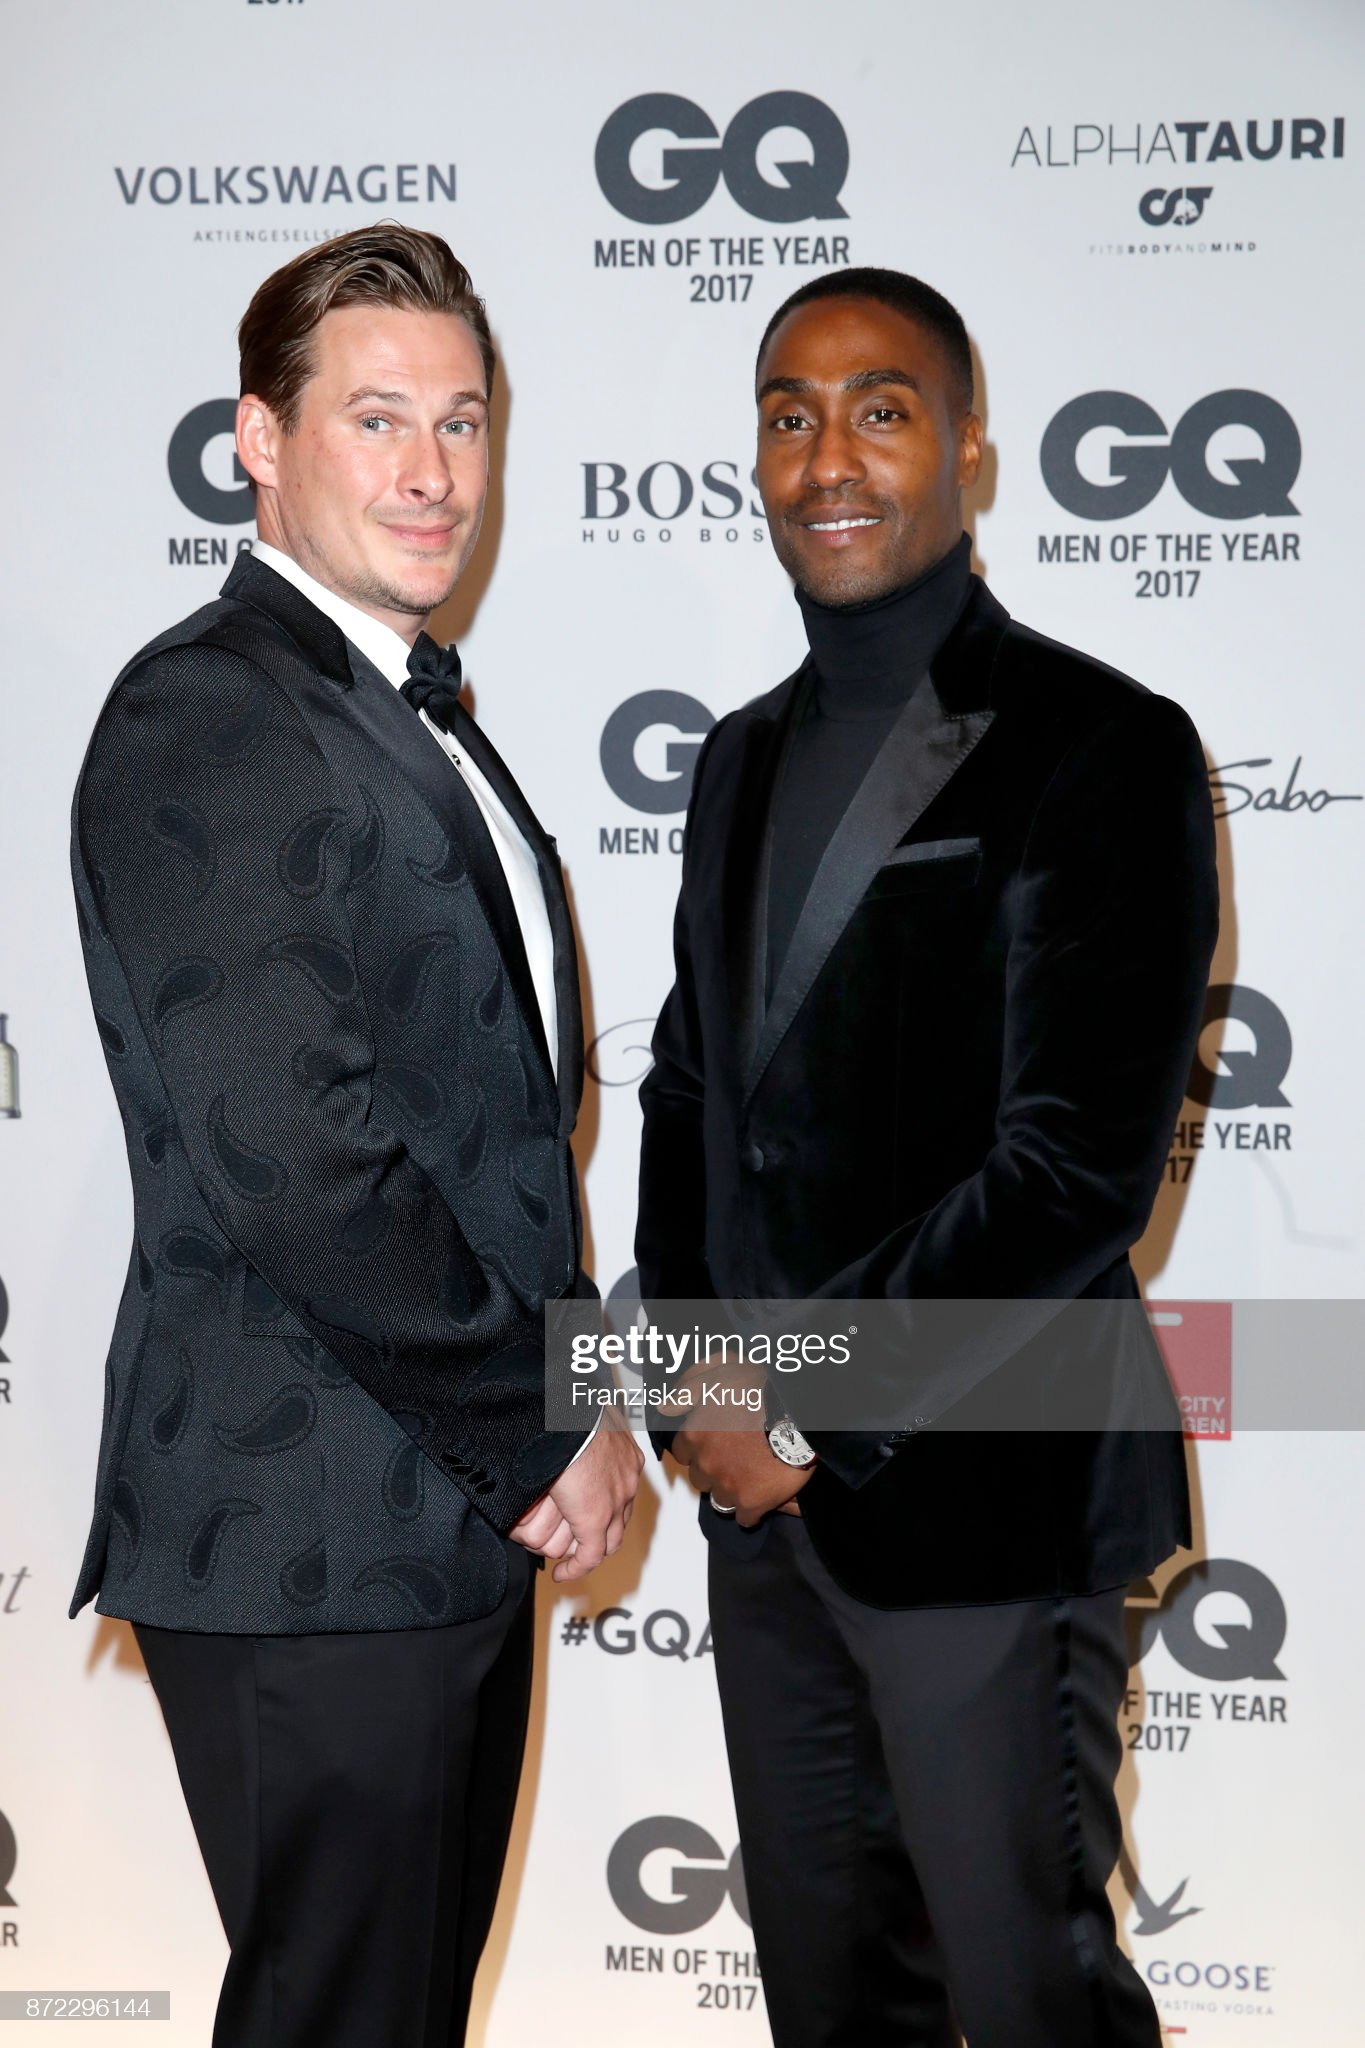 ¿Cuánto mide Lee Ryan? - Real height Lee-ryan-and-simon-webbe-of-the-band-blue-arrive-for-the-gq-men-of-picture-id872296144?s=2048x2048